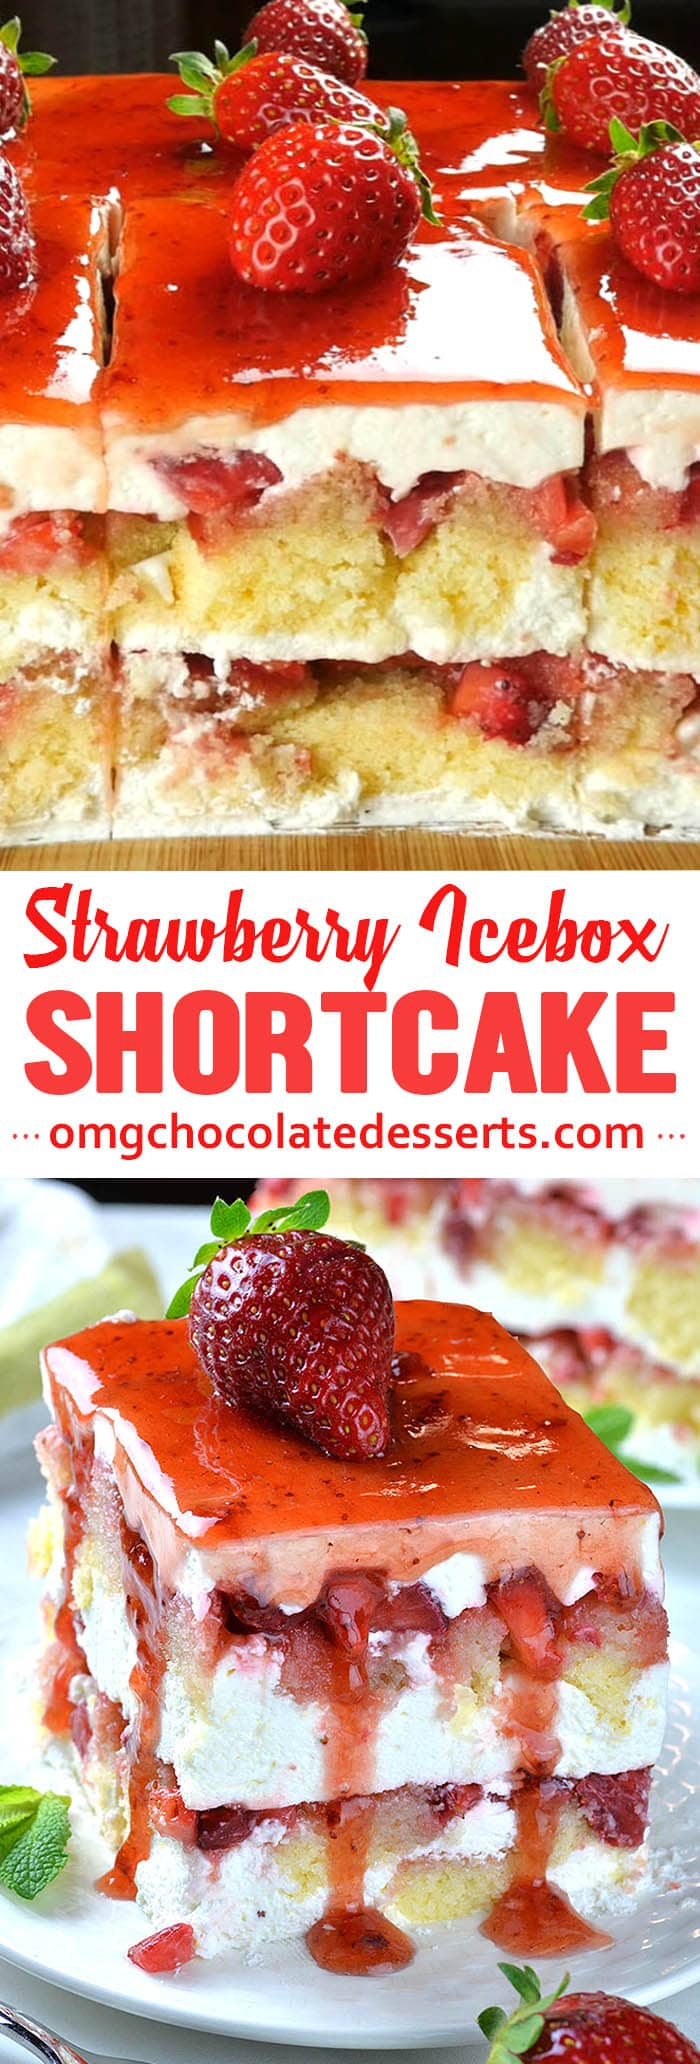 You don't have to choose between your favorite desserts with fresh strawberries: Strawberry Shortcake and Strawberry Icebox Cake.  Strawberry Icebox Shortcake is delicious twist on two classic spring and summer treats!